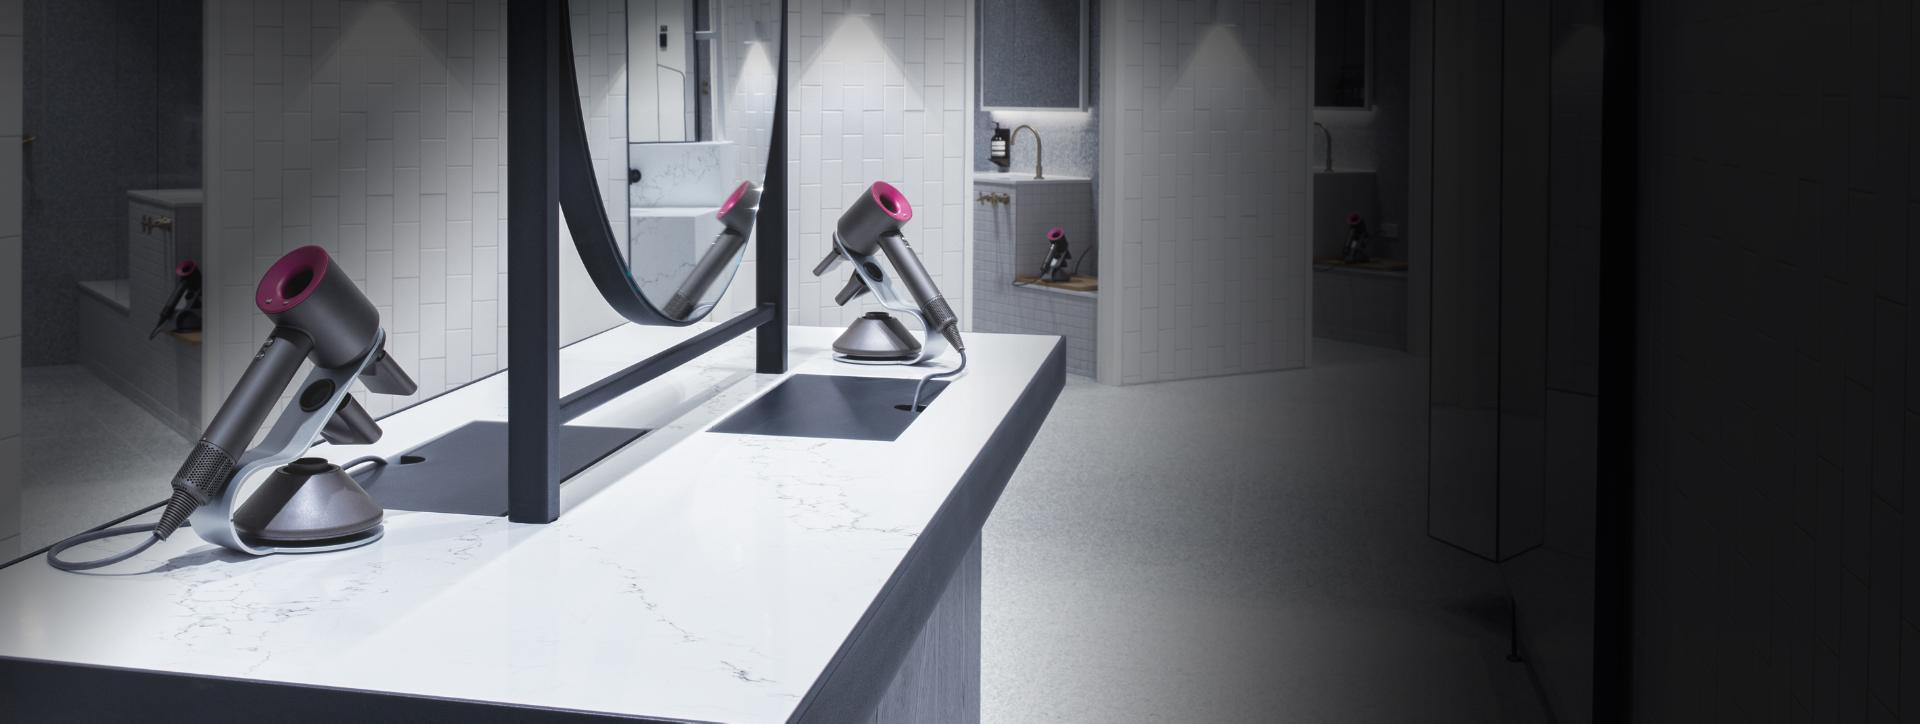 Image of Dyson Supersonics in a dressing room